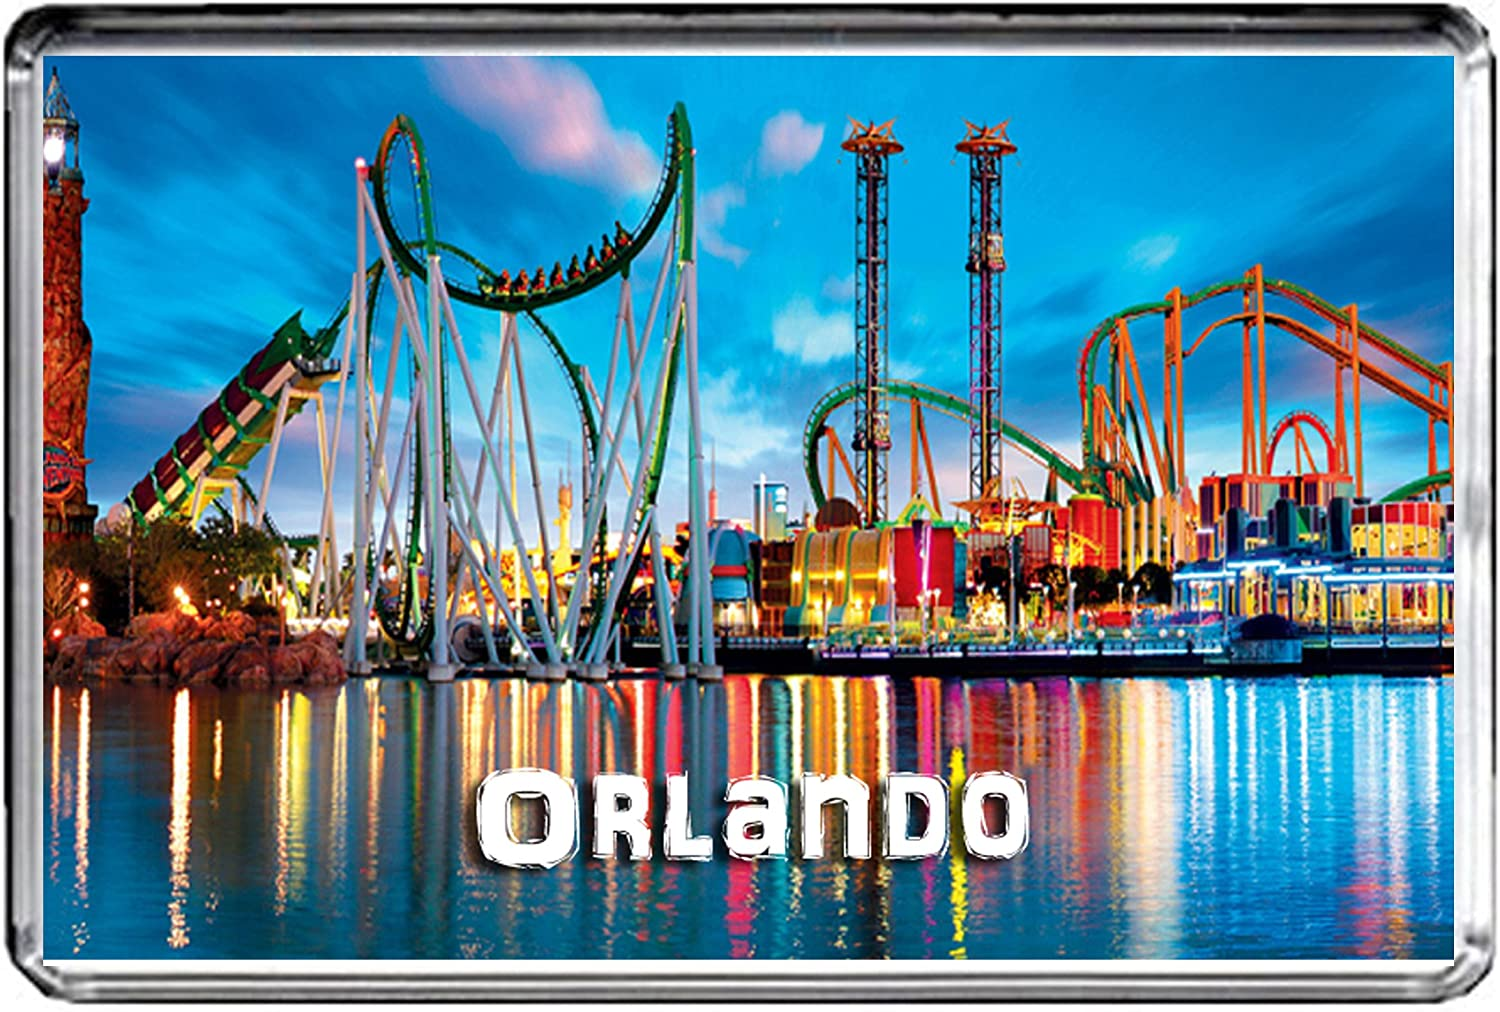 USA E360 ORLANDO FLORIDA FRIDGE MAGNET TRAVEL PHOTO REFRIGERATOR MAGNET